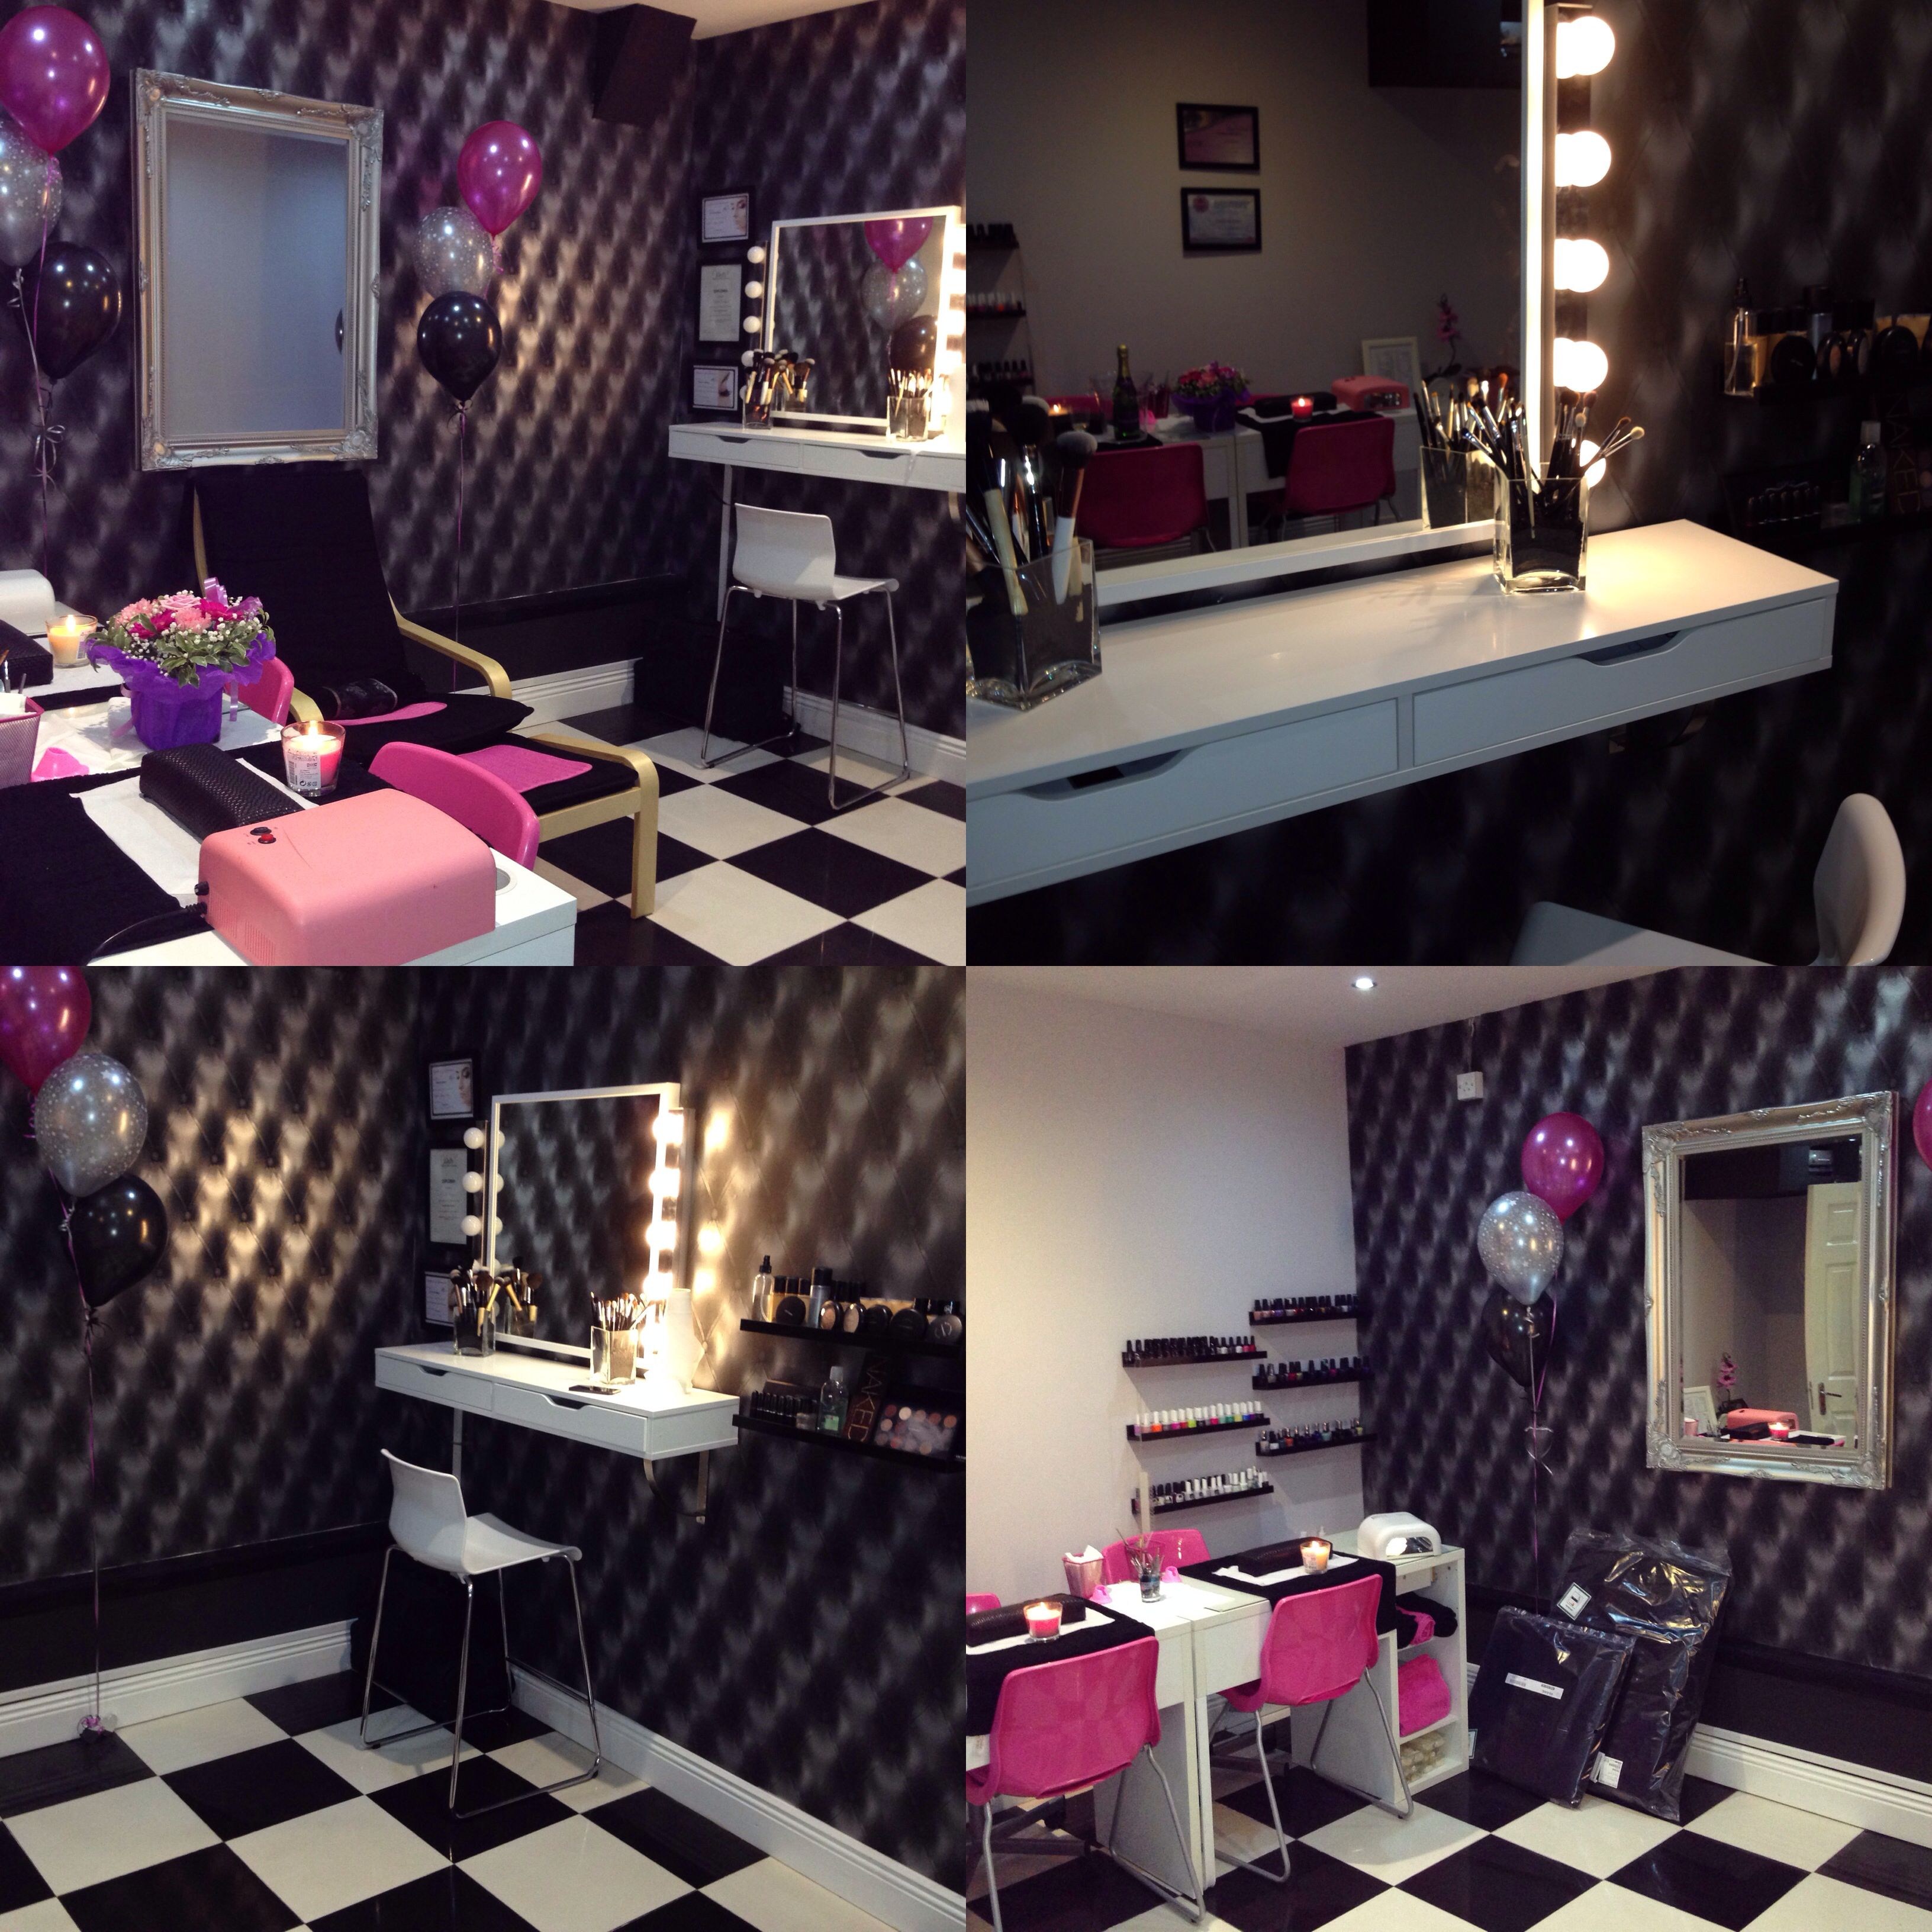 Beauty salon makeup stationvanity mirror with lights My work